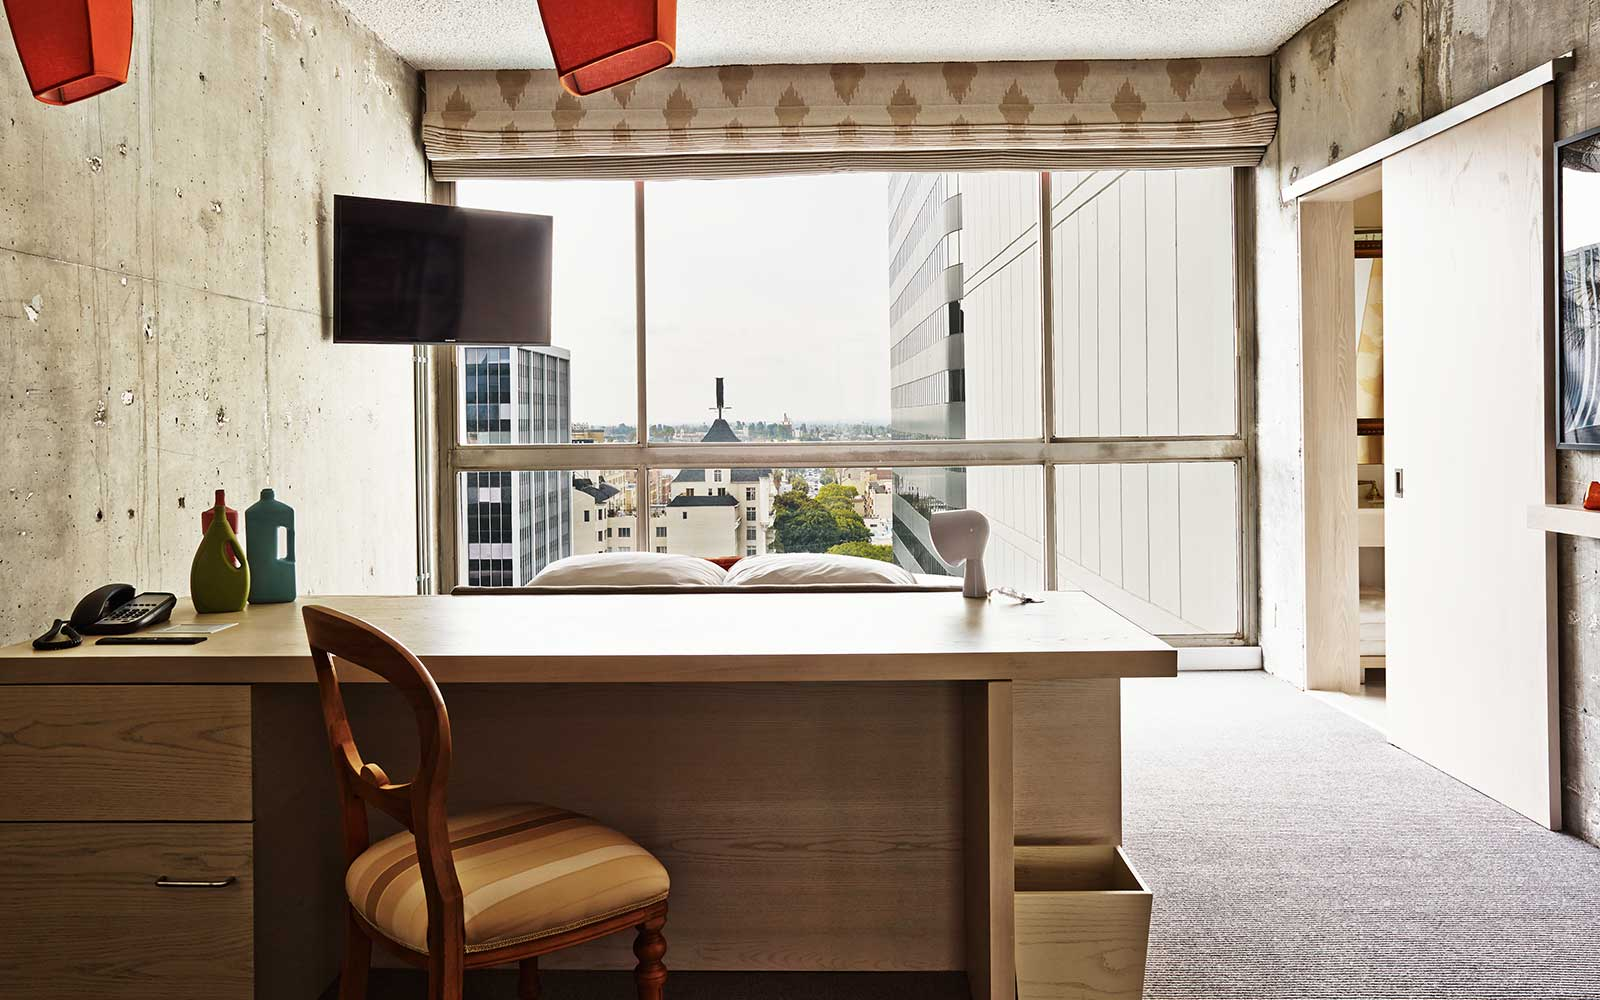 The Line Hotel - Room / Knibb Design (12)